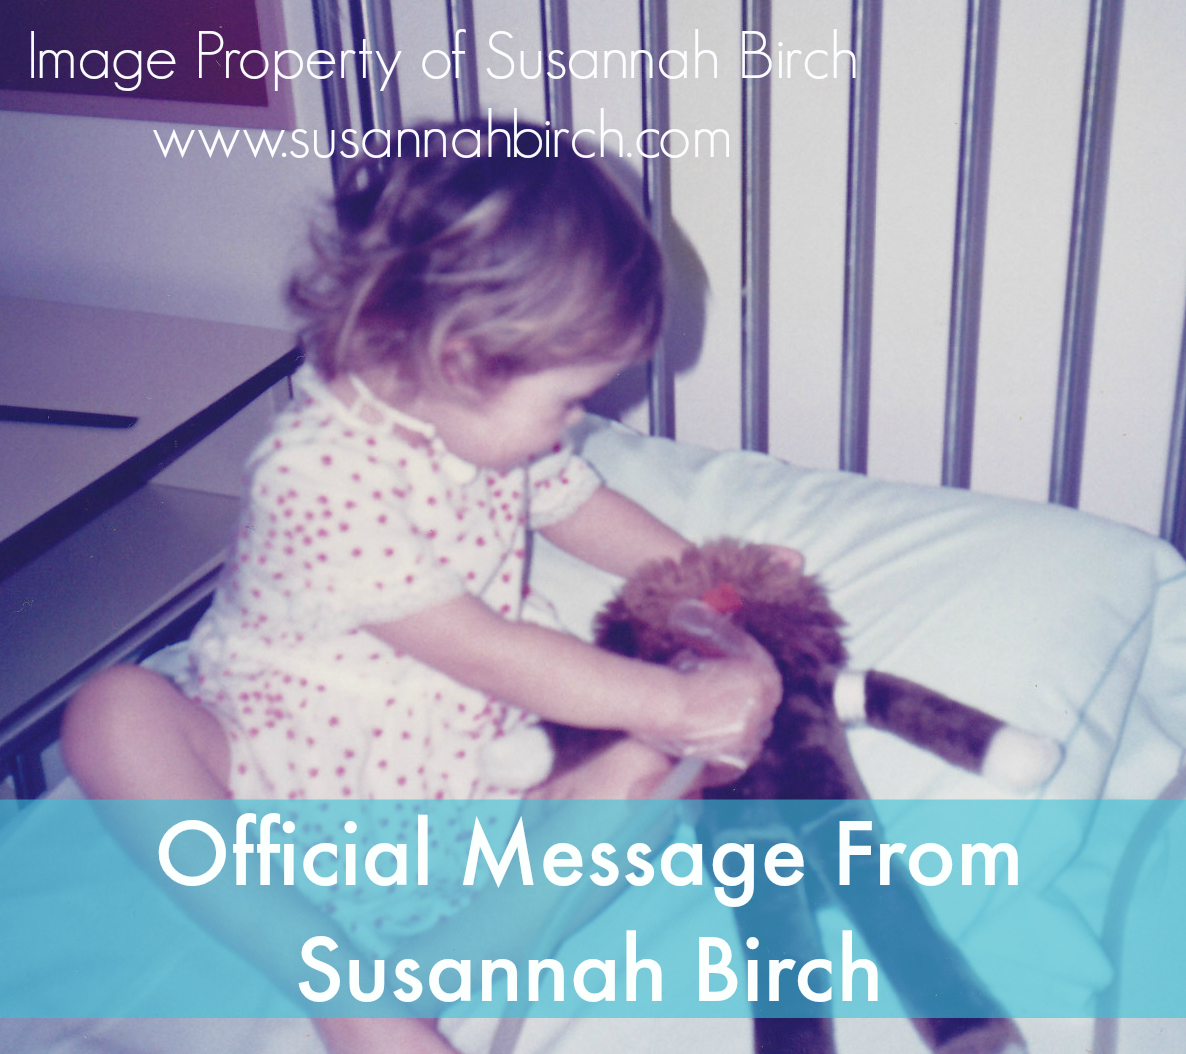 Susannah Birch - The Girl Whose Mother Cut Her Neck. Official message.